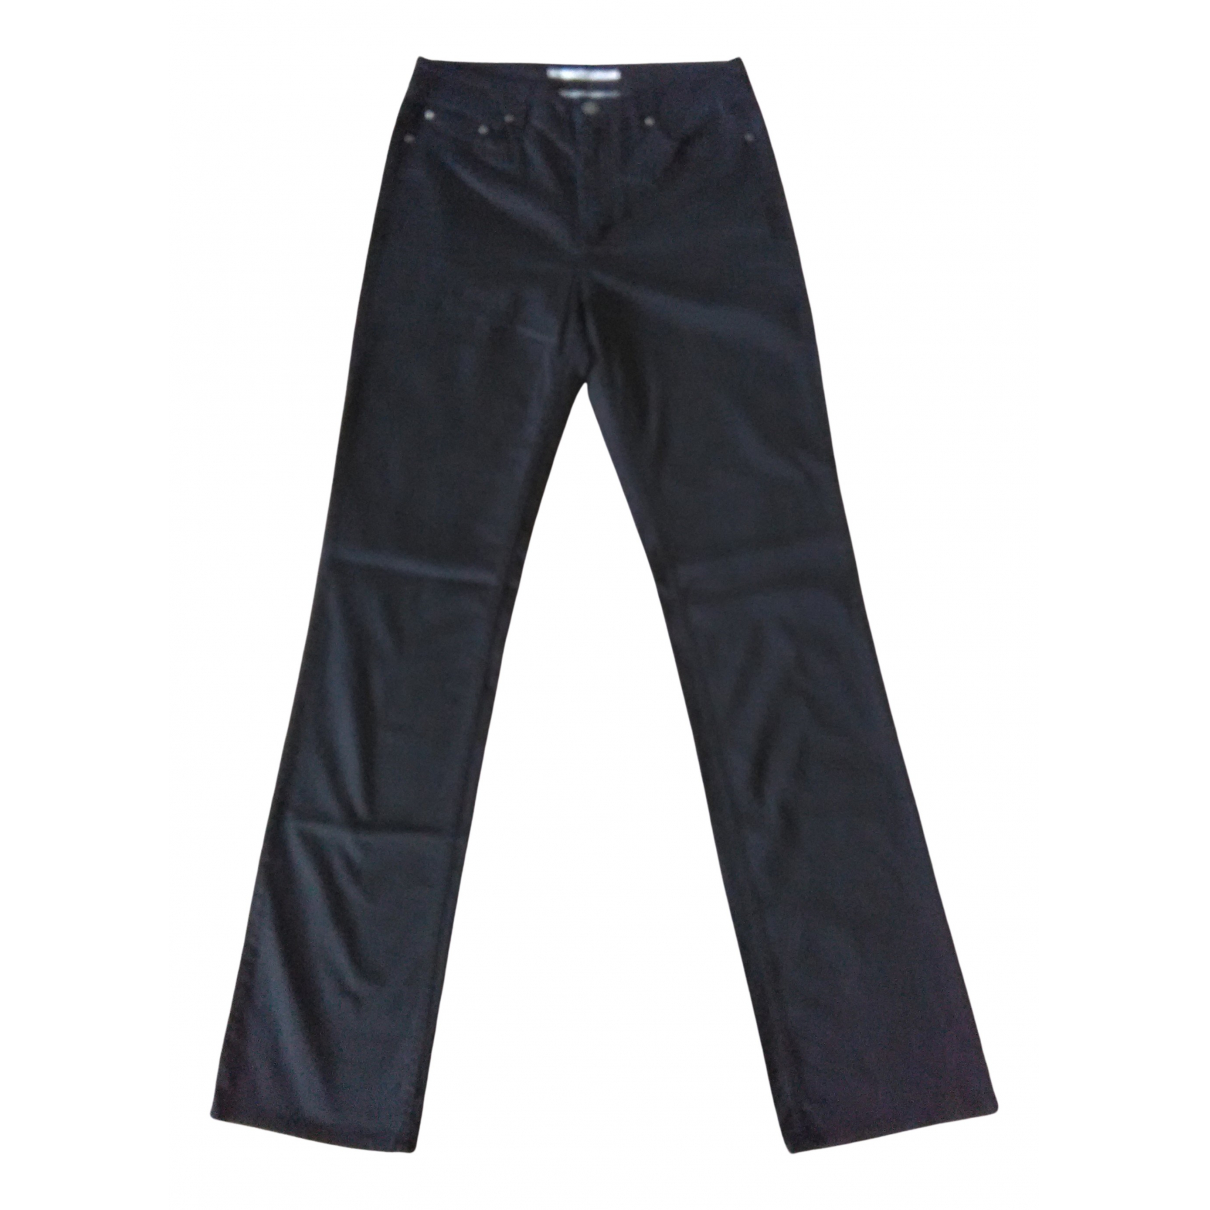 Tommy Hilfiger N Black Cotton Trousers for Women 6 US